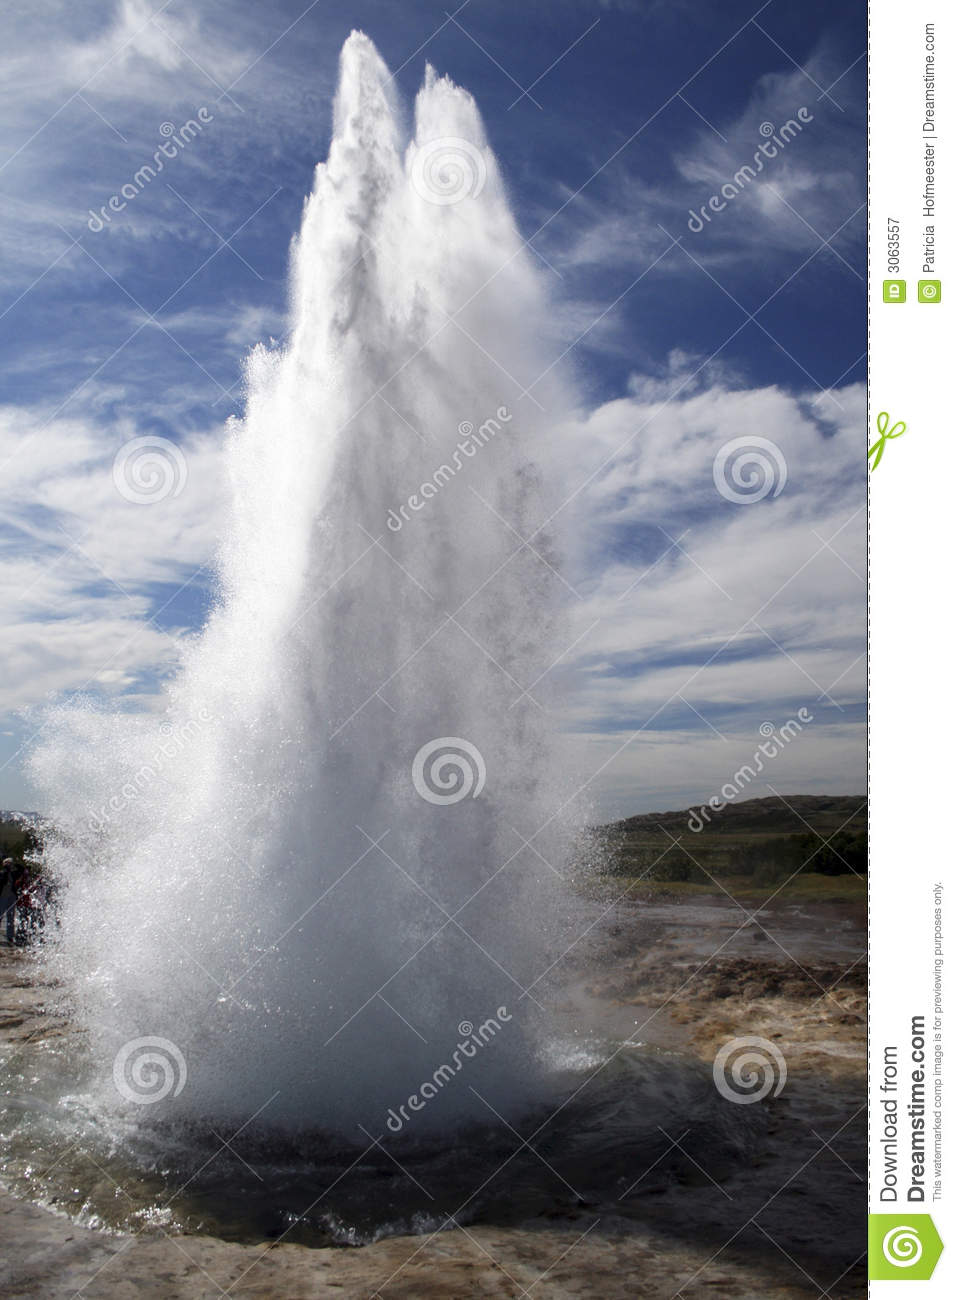 Download Geyser eruption stock image. Image of bright, environment - 3063557